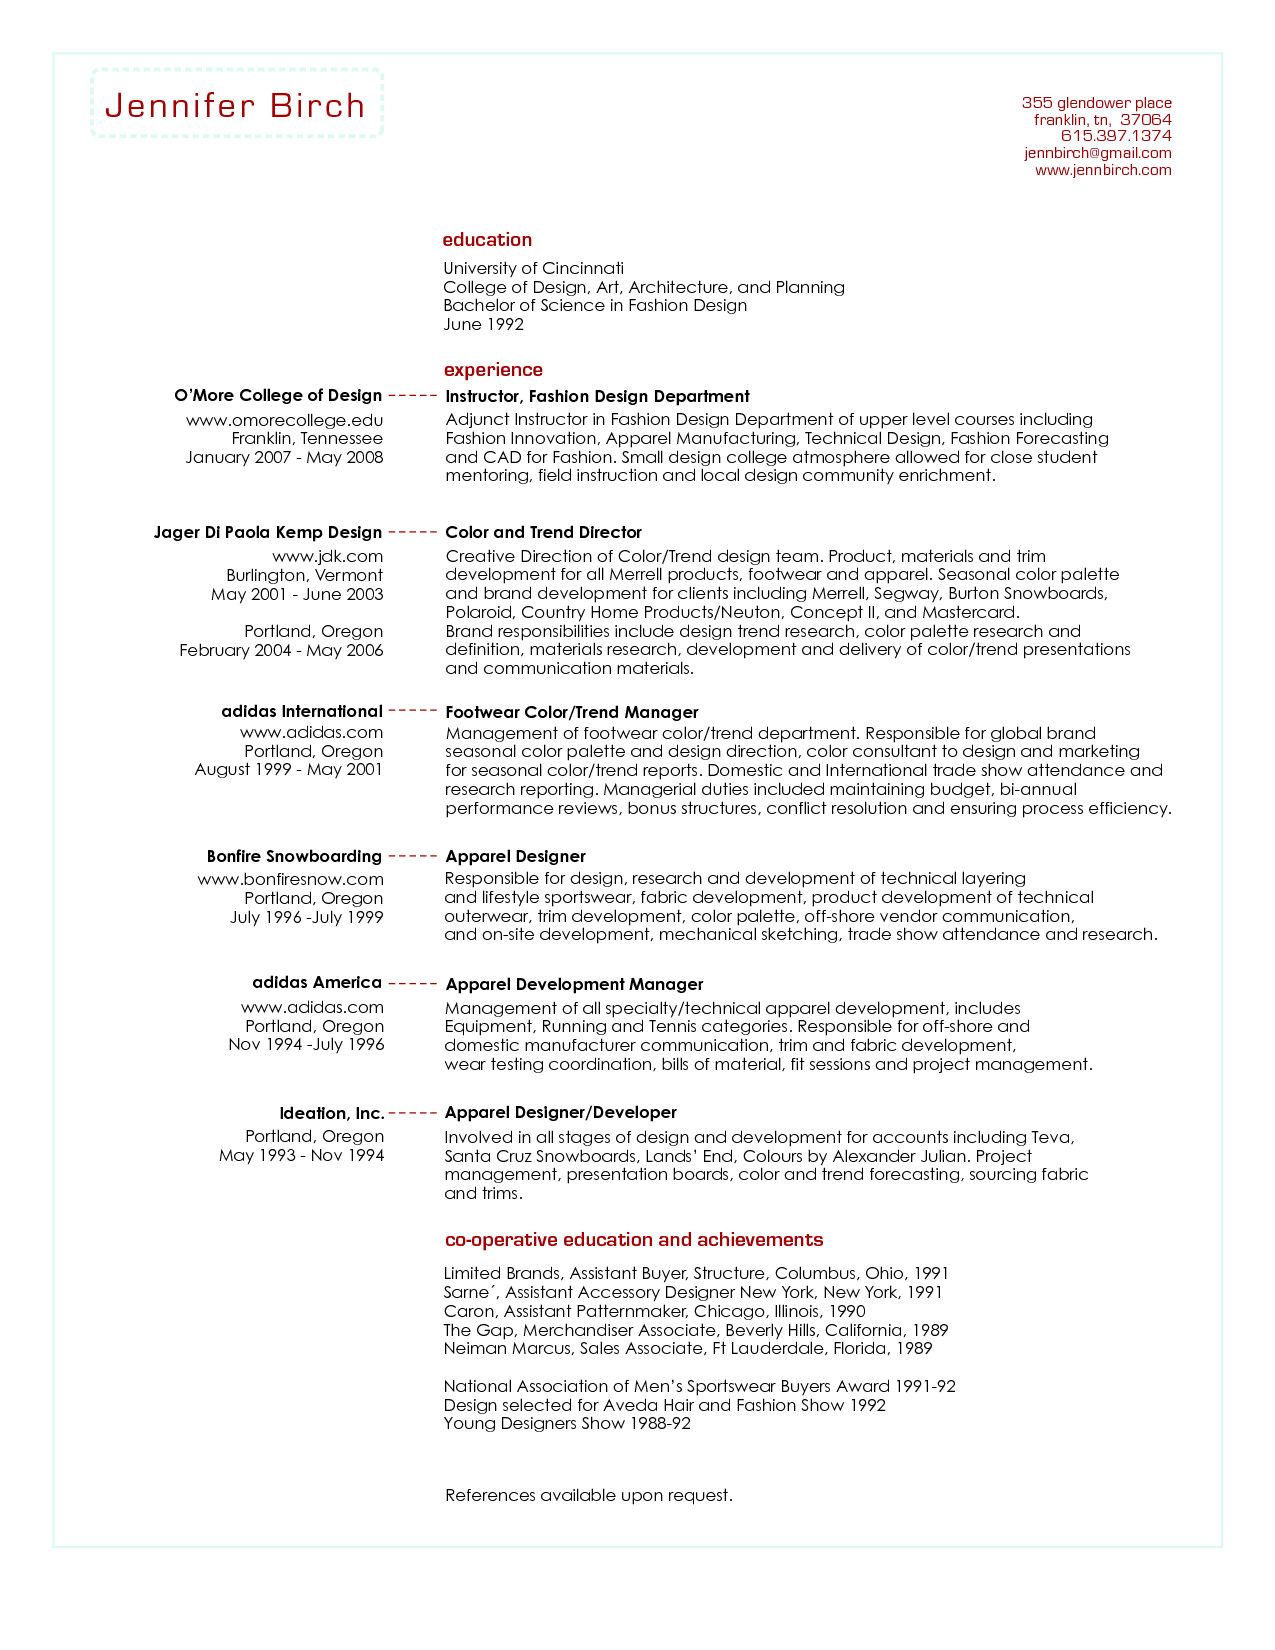 Google Templates Resume Junior Fashion Buyer Resume Skills  Google Search  Resume